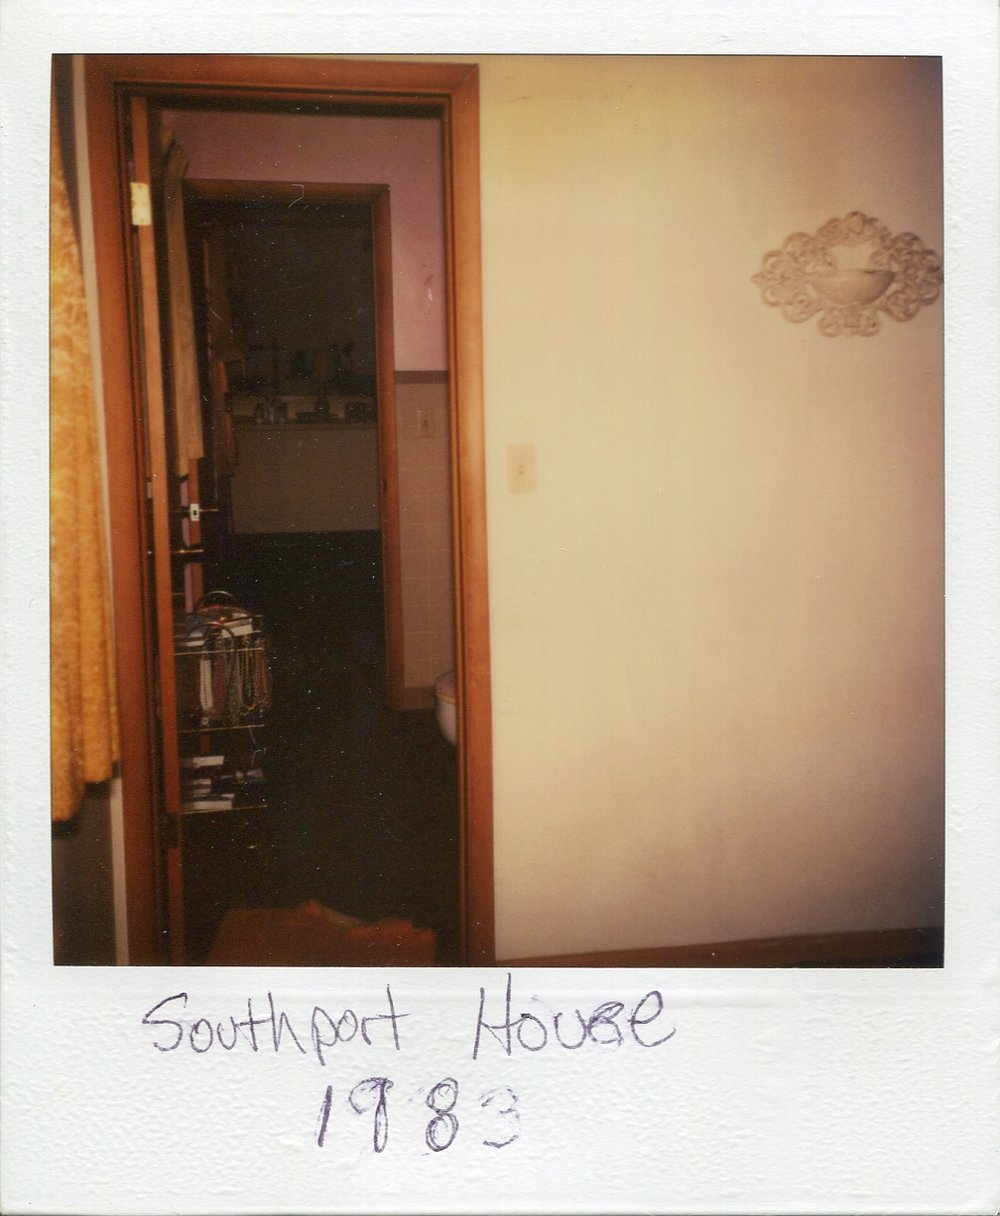 Dianne_SouthportHome_001.jpg